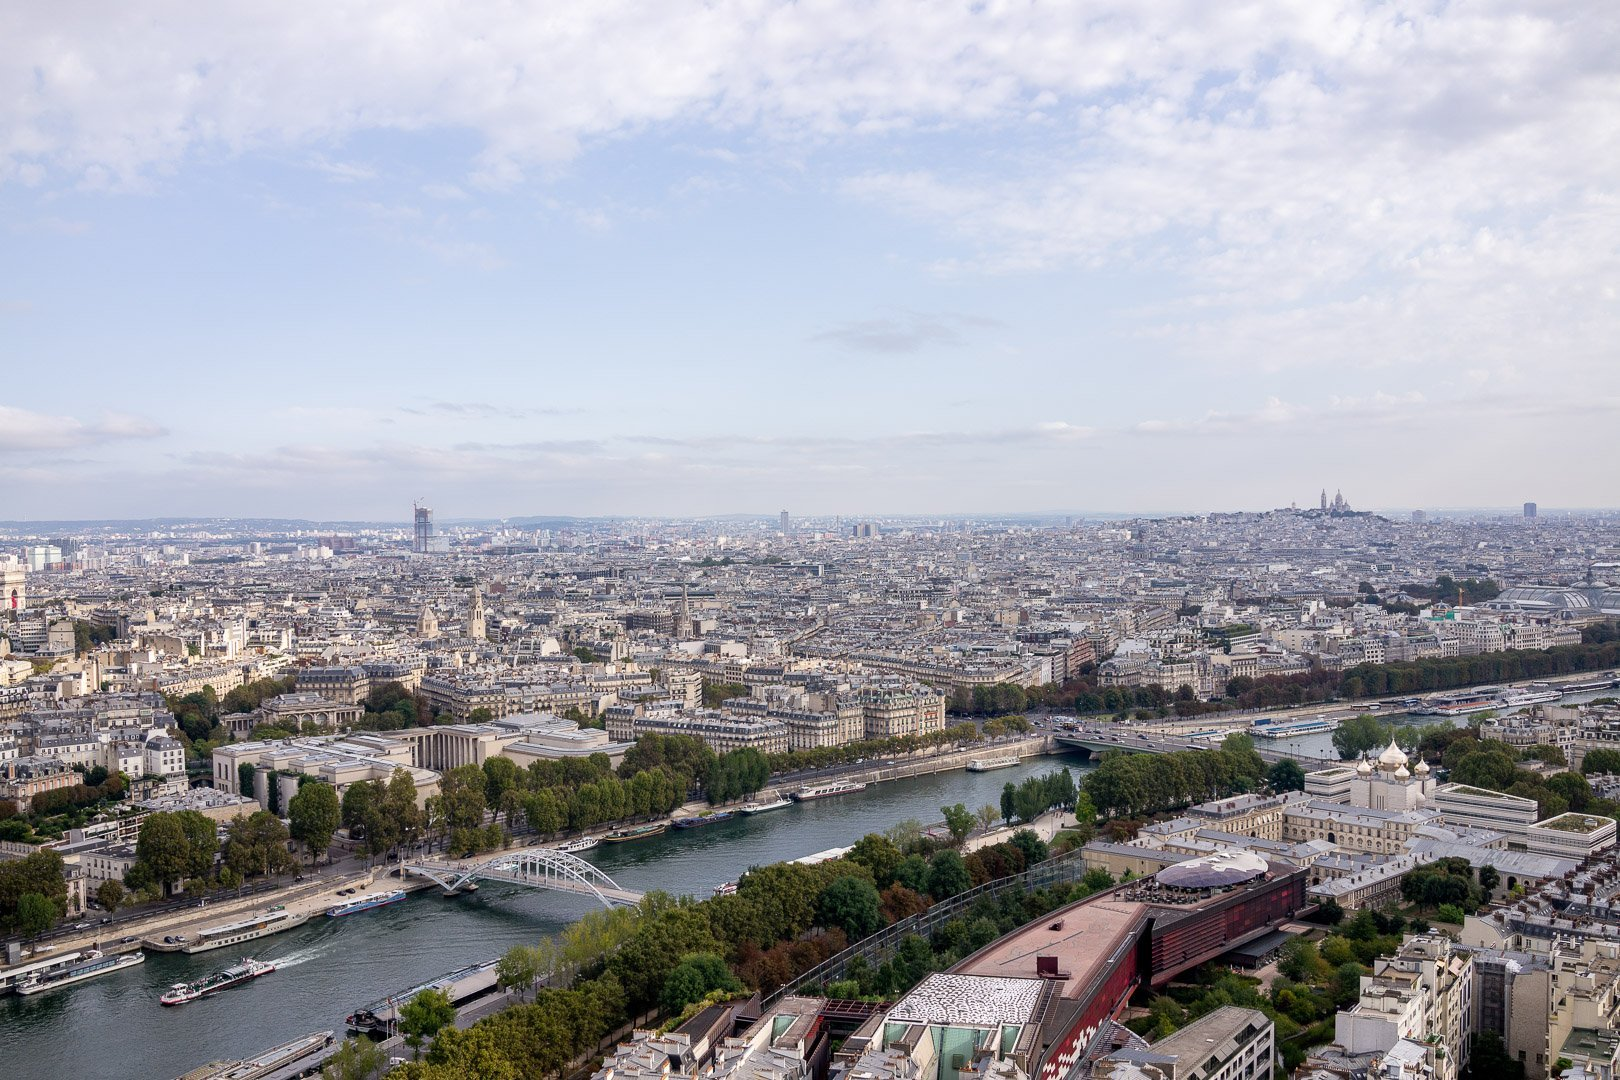 View of the Seine River from the observation deck at the Eiffel Tower in Paris